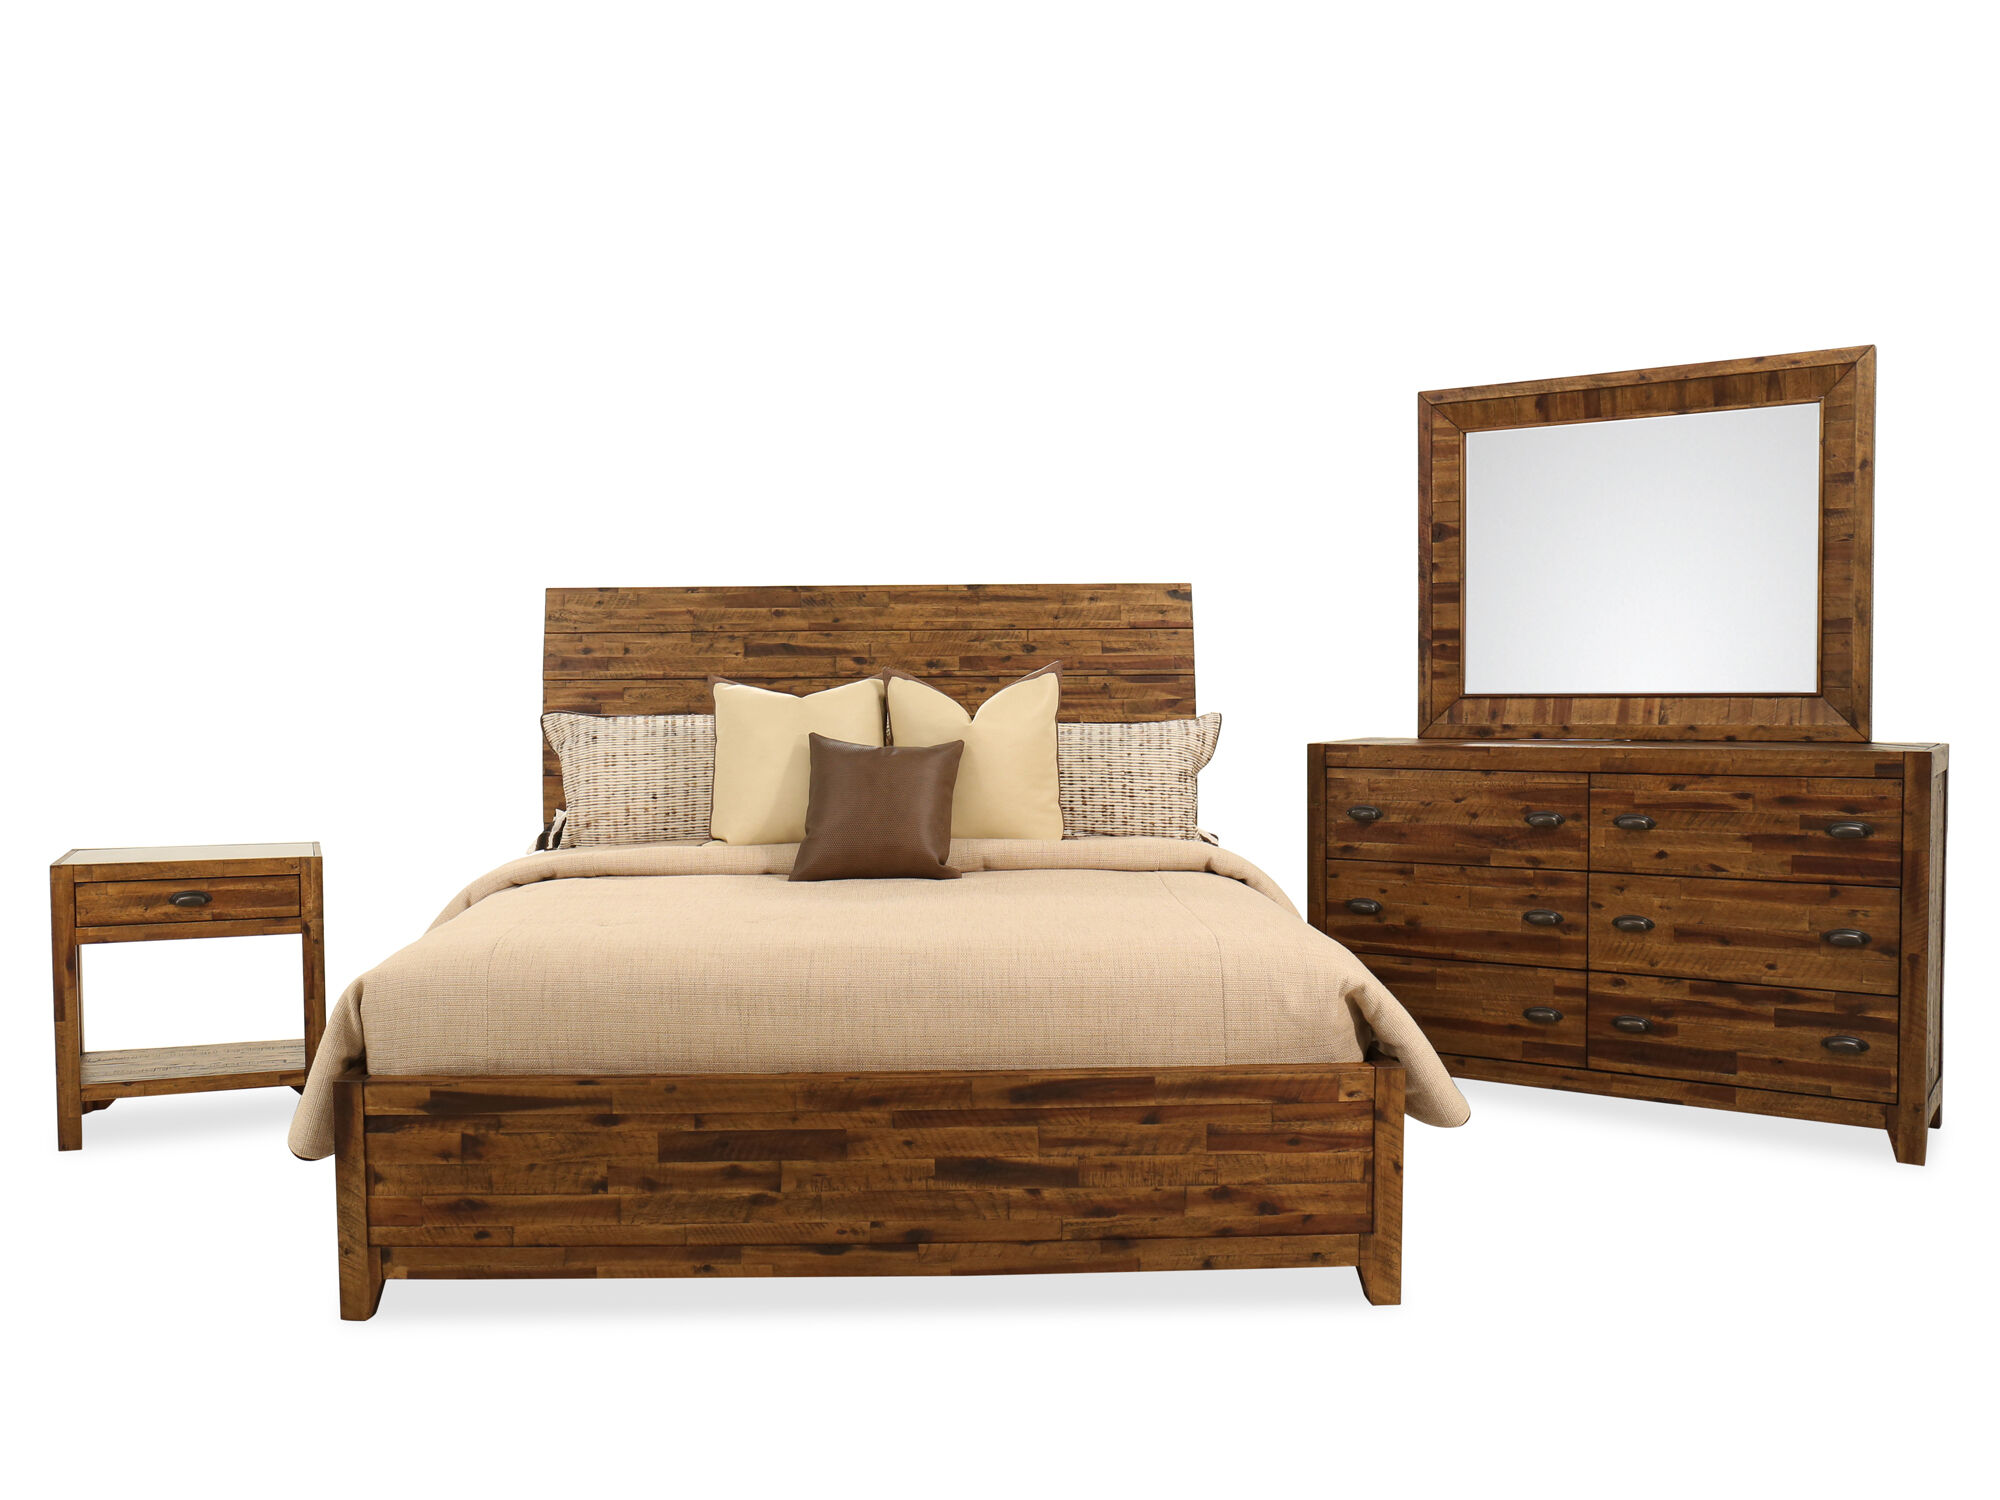 Awesome Country Bedroom Sets Concept